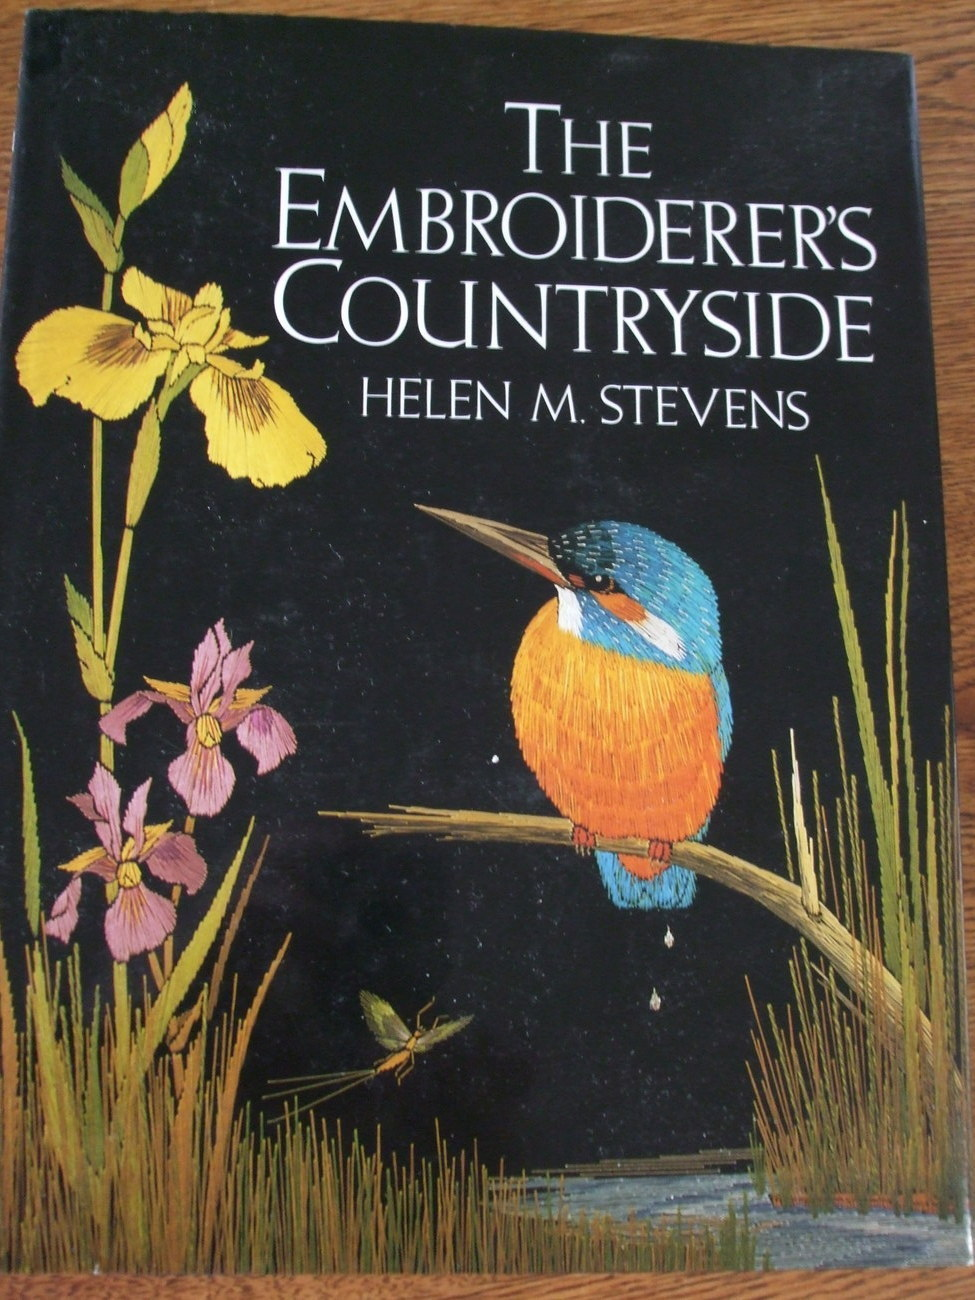 The Embroiderer's Countryside by Helen M. Stevens